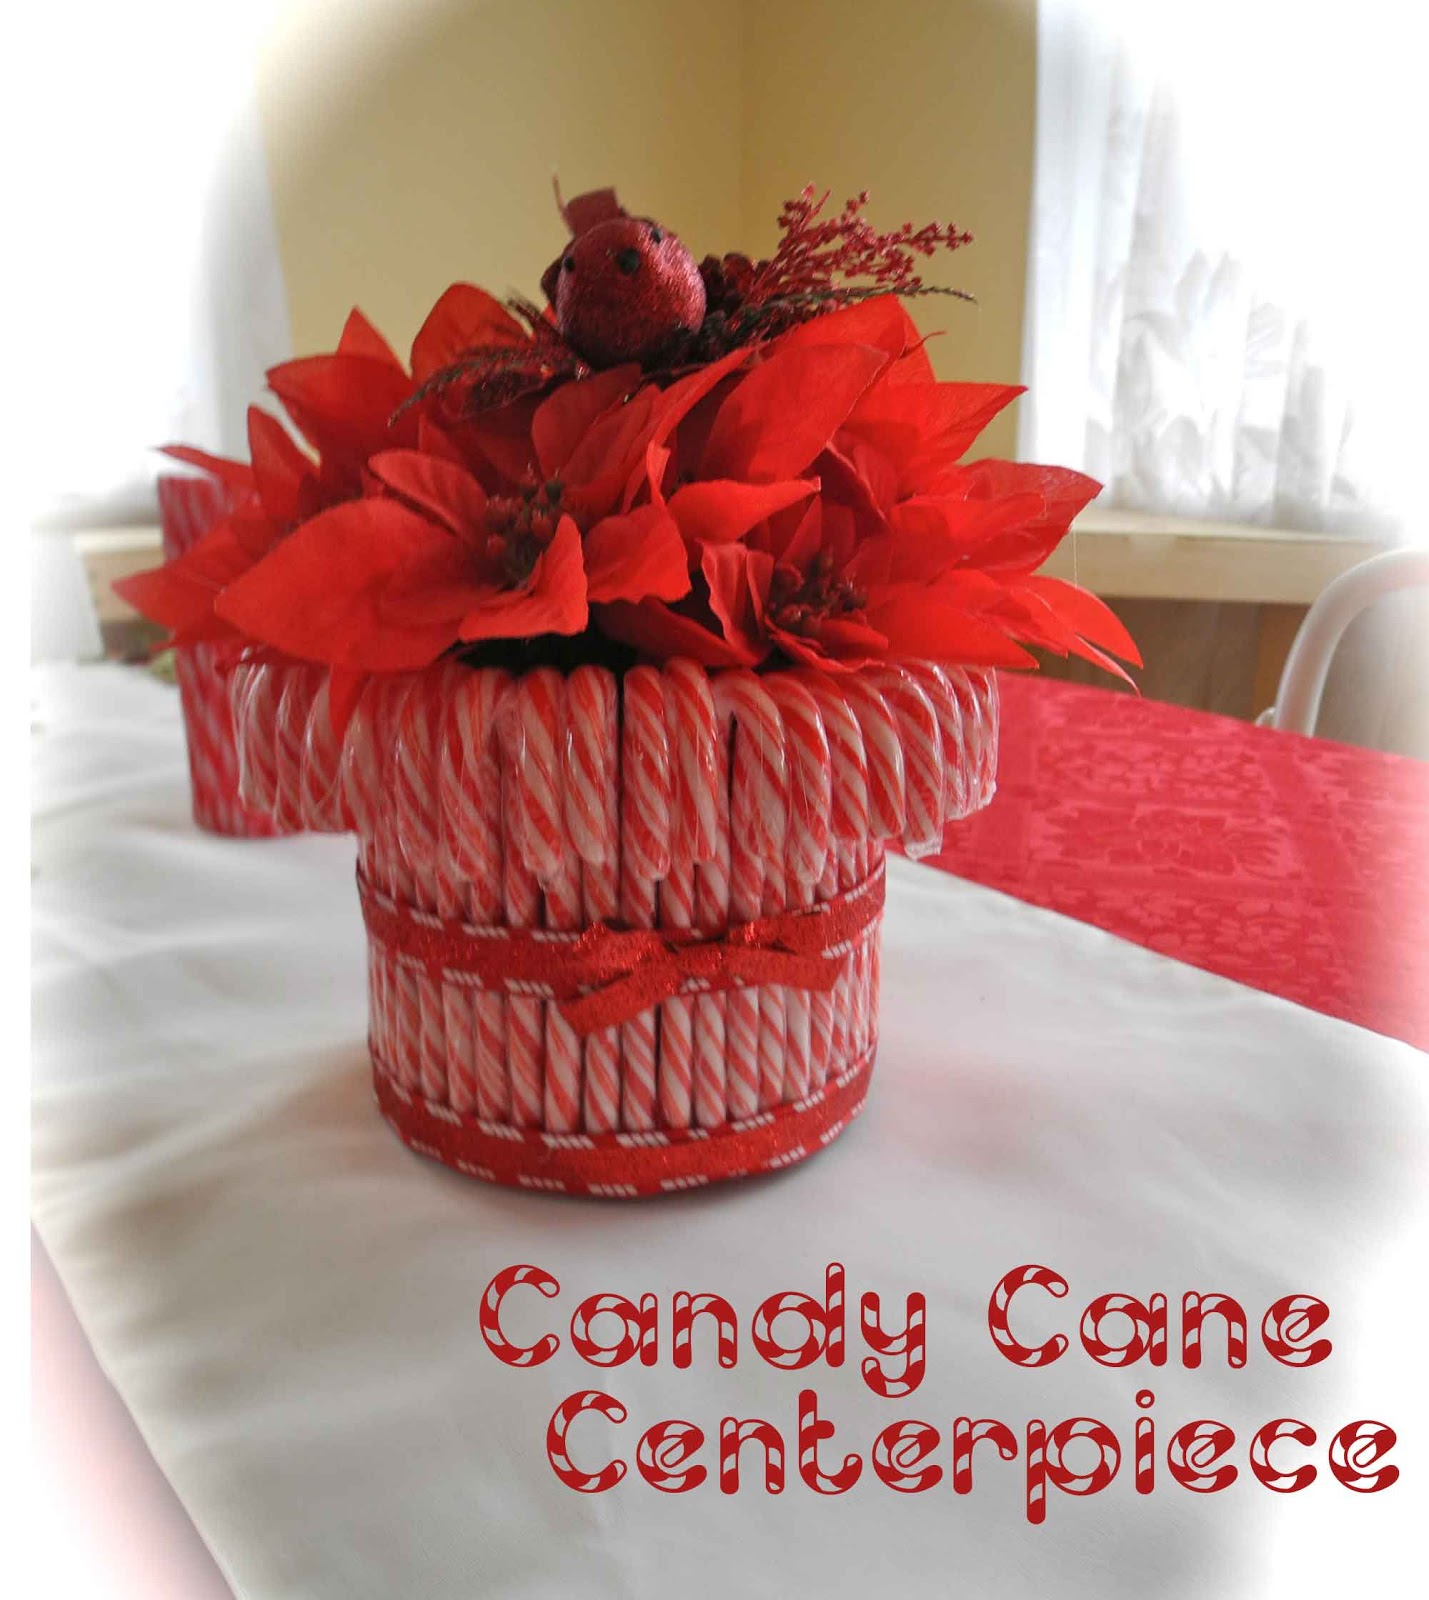 Candy cane centerpiece making memories for Candy cane holder candle centerpiece